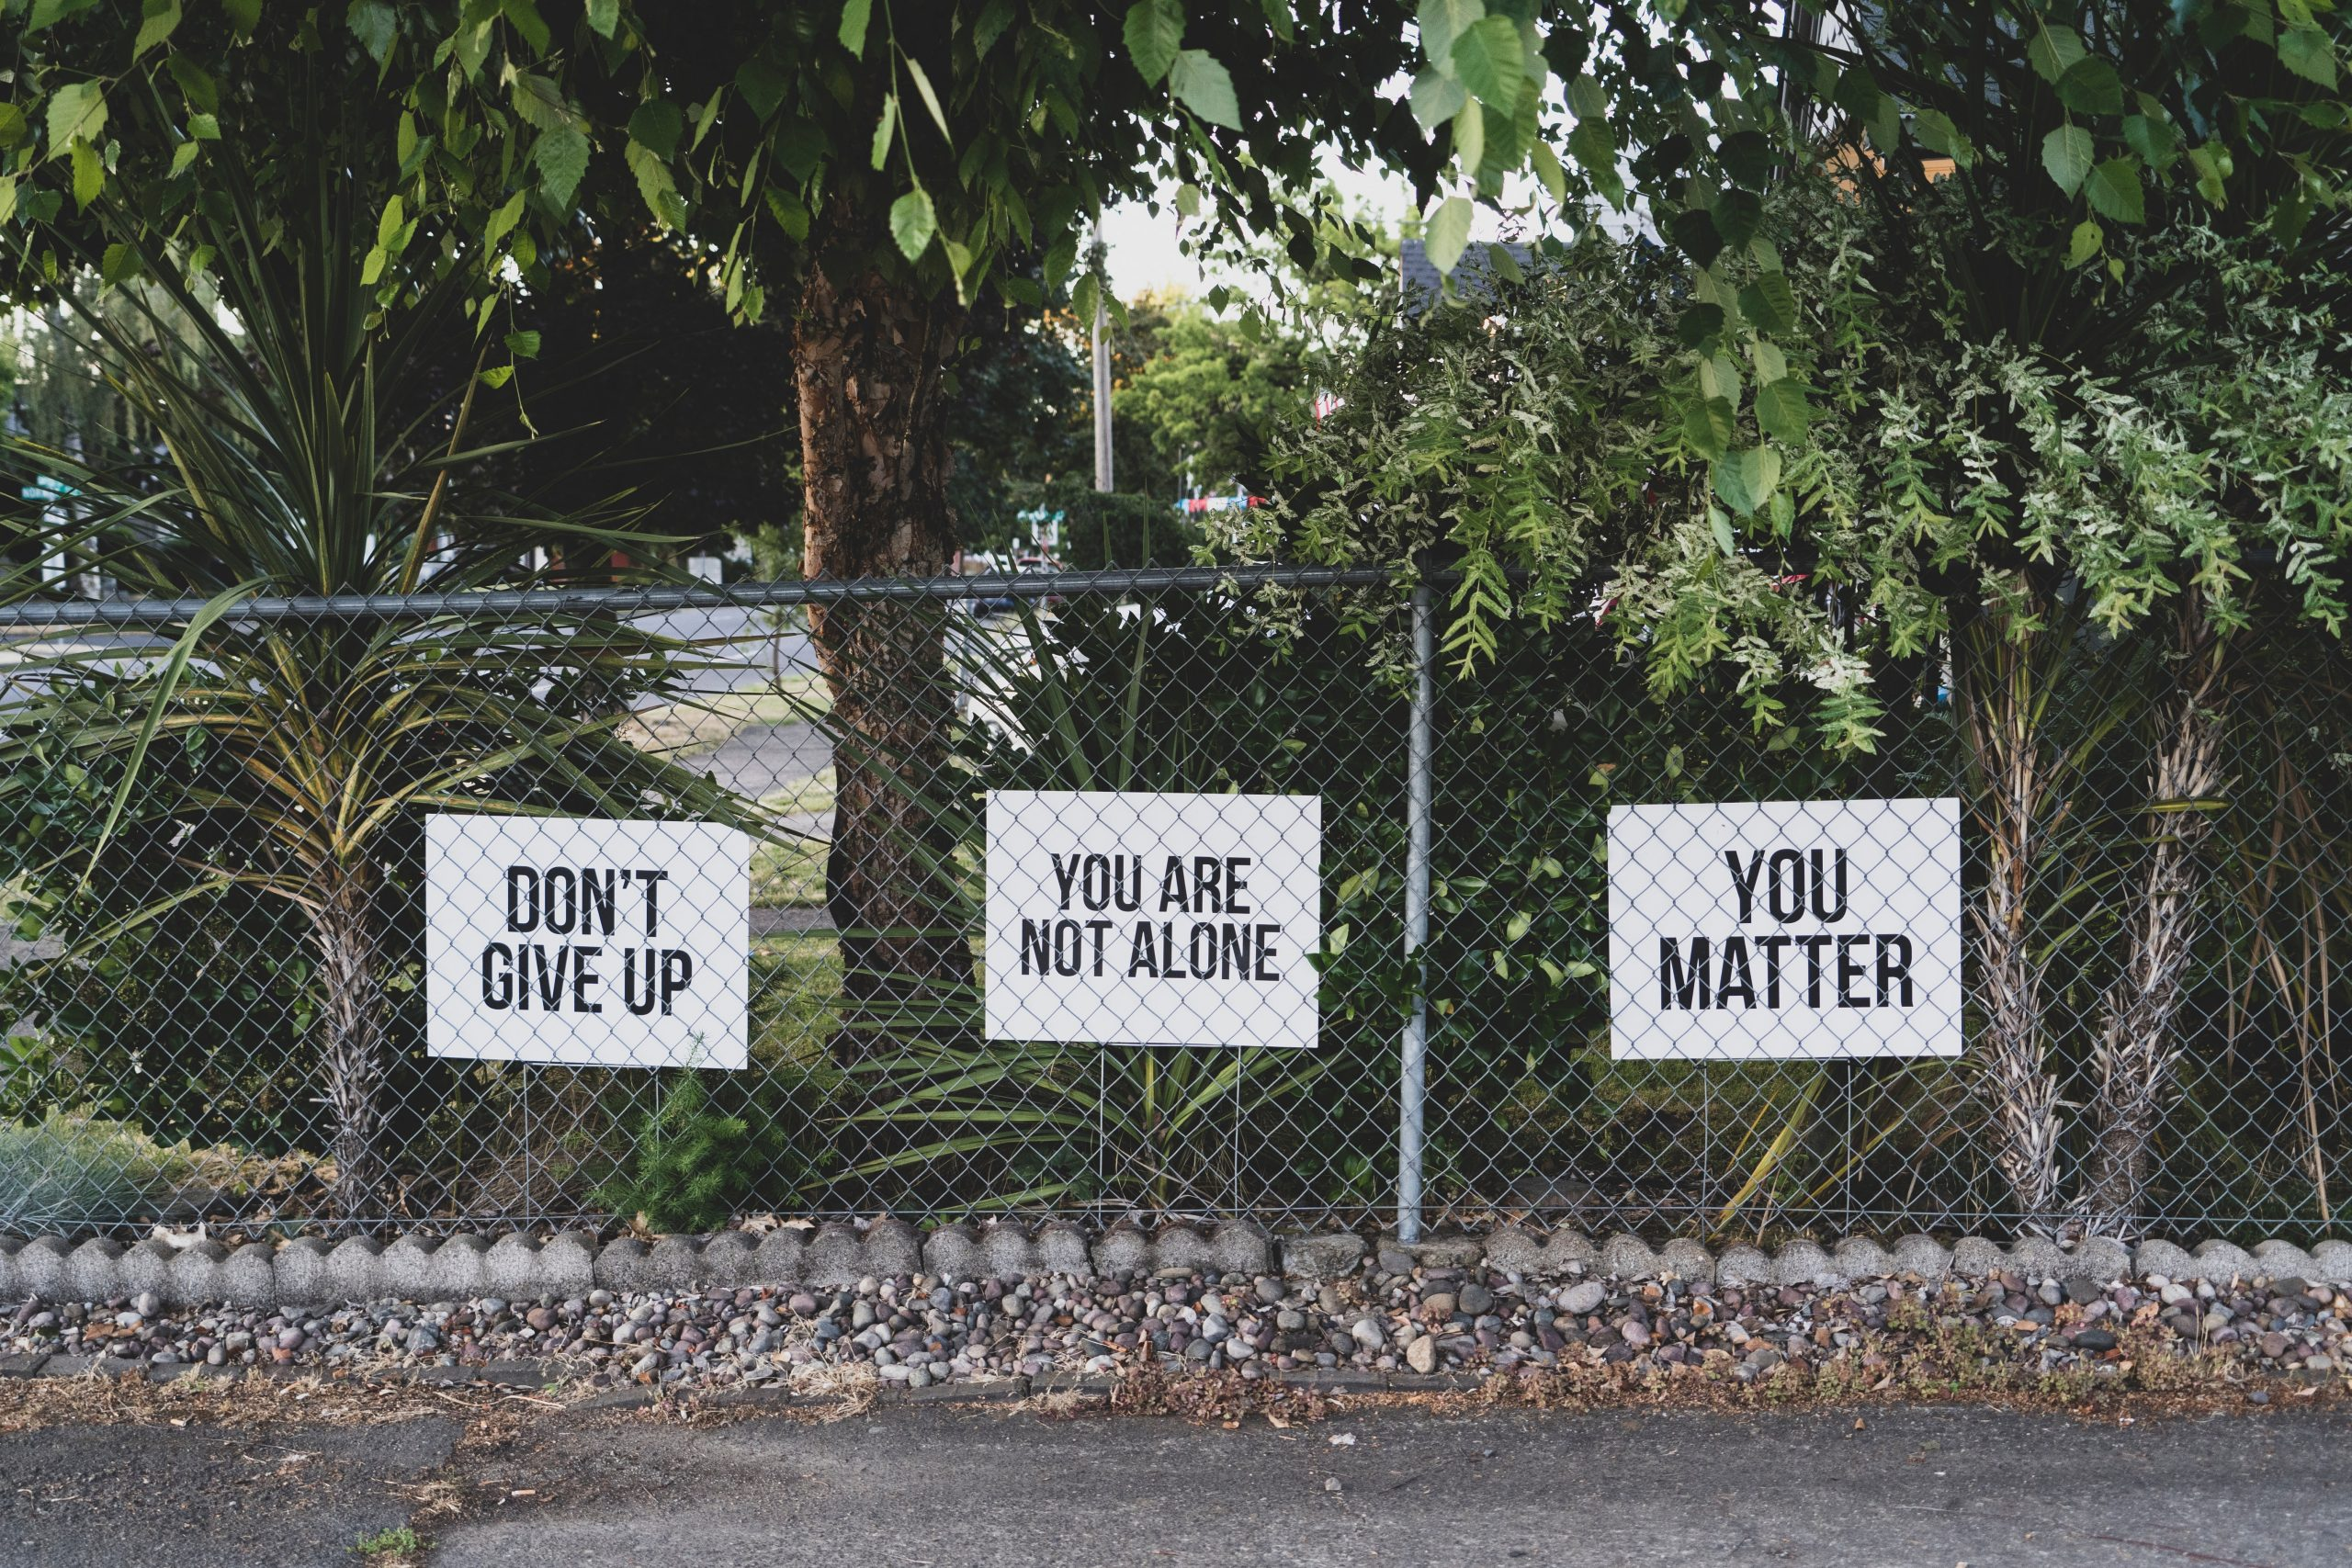 sign on fence - don't give up, you are not alone, you matter